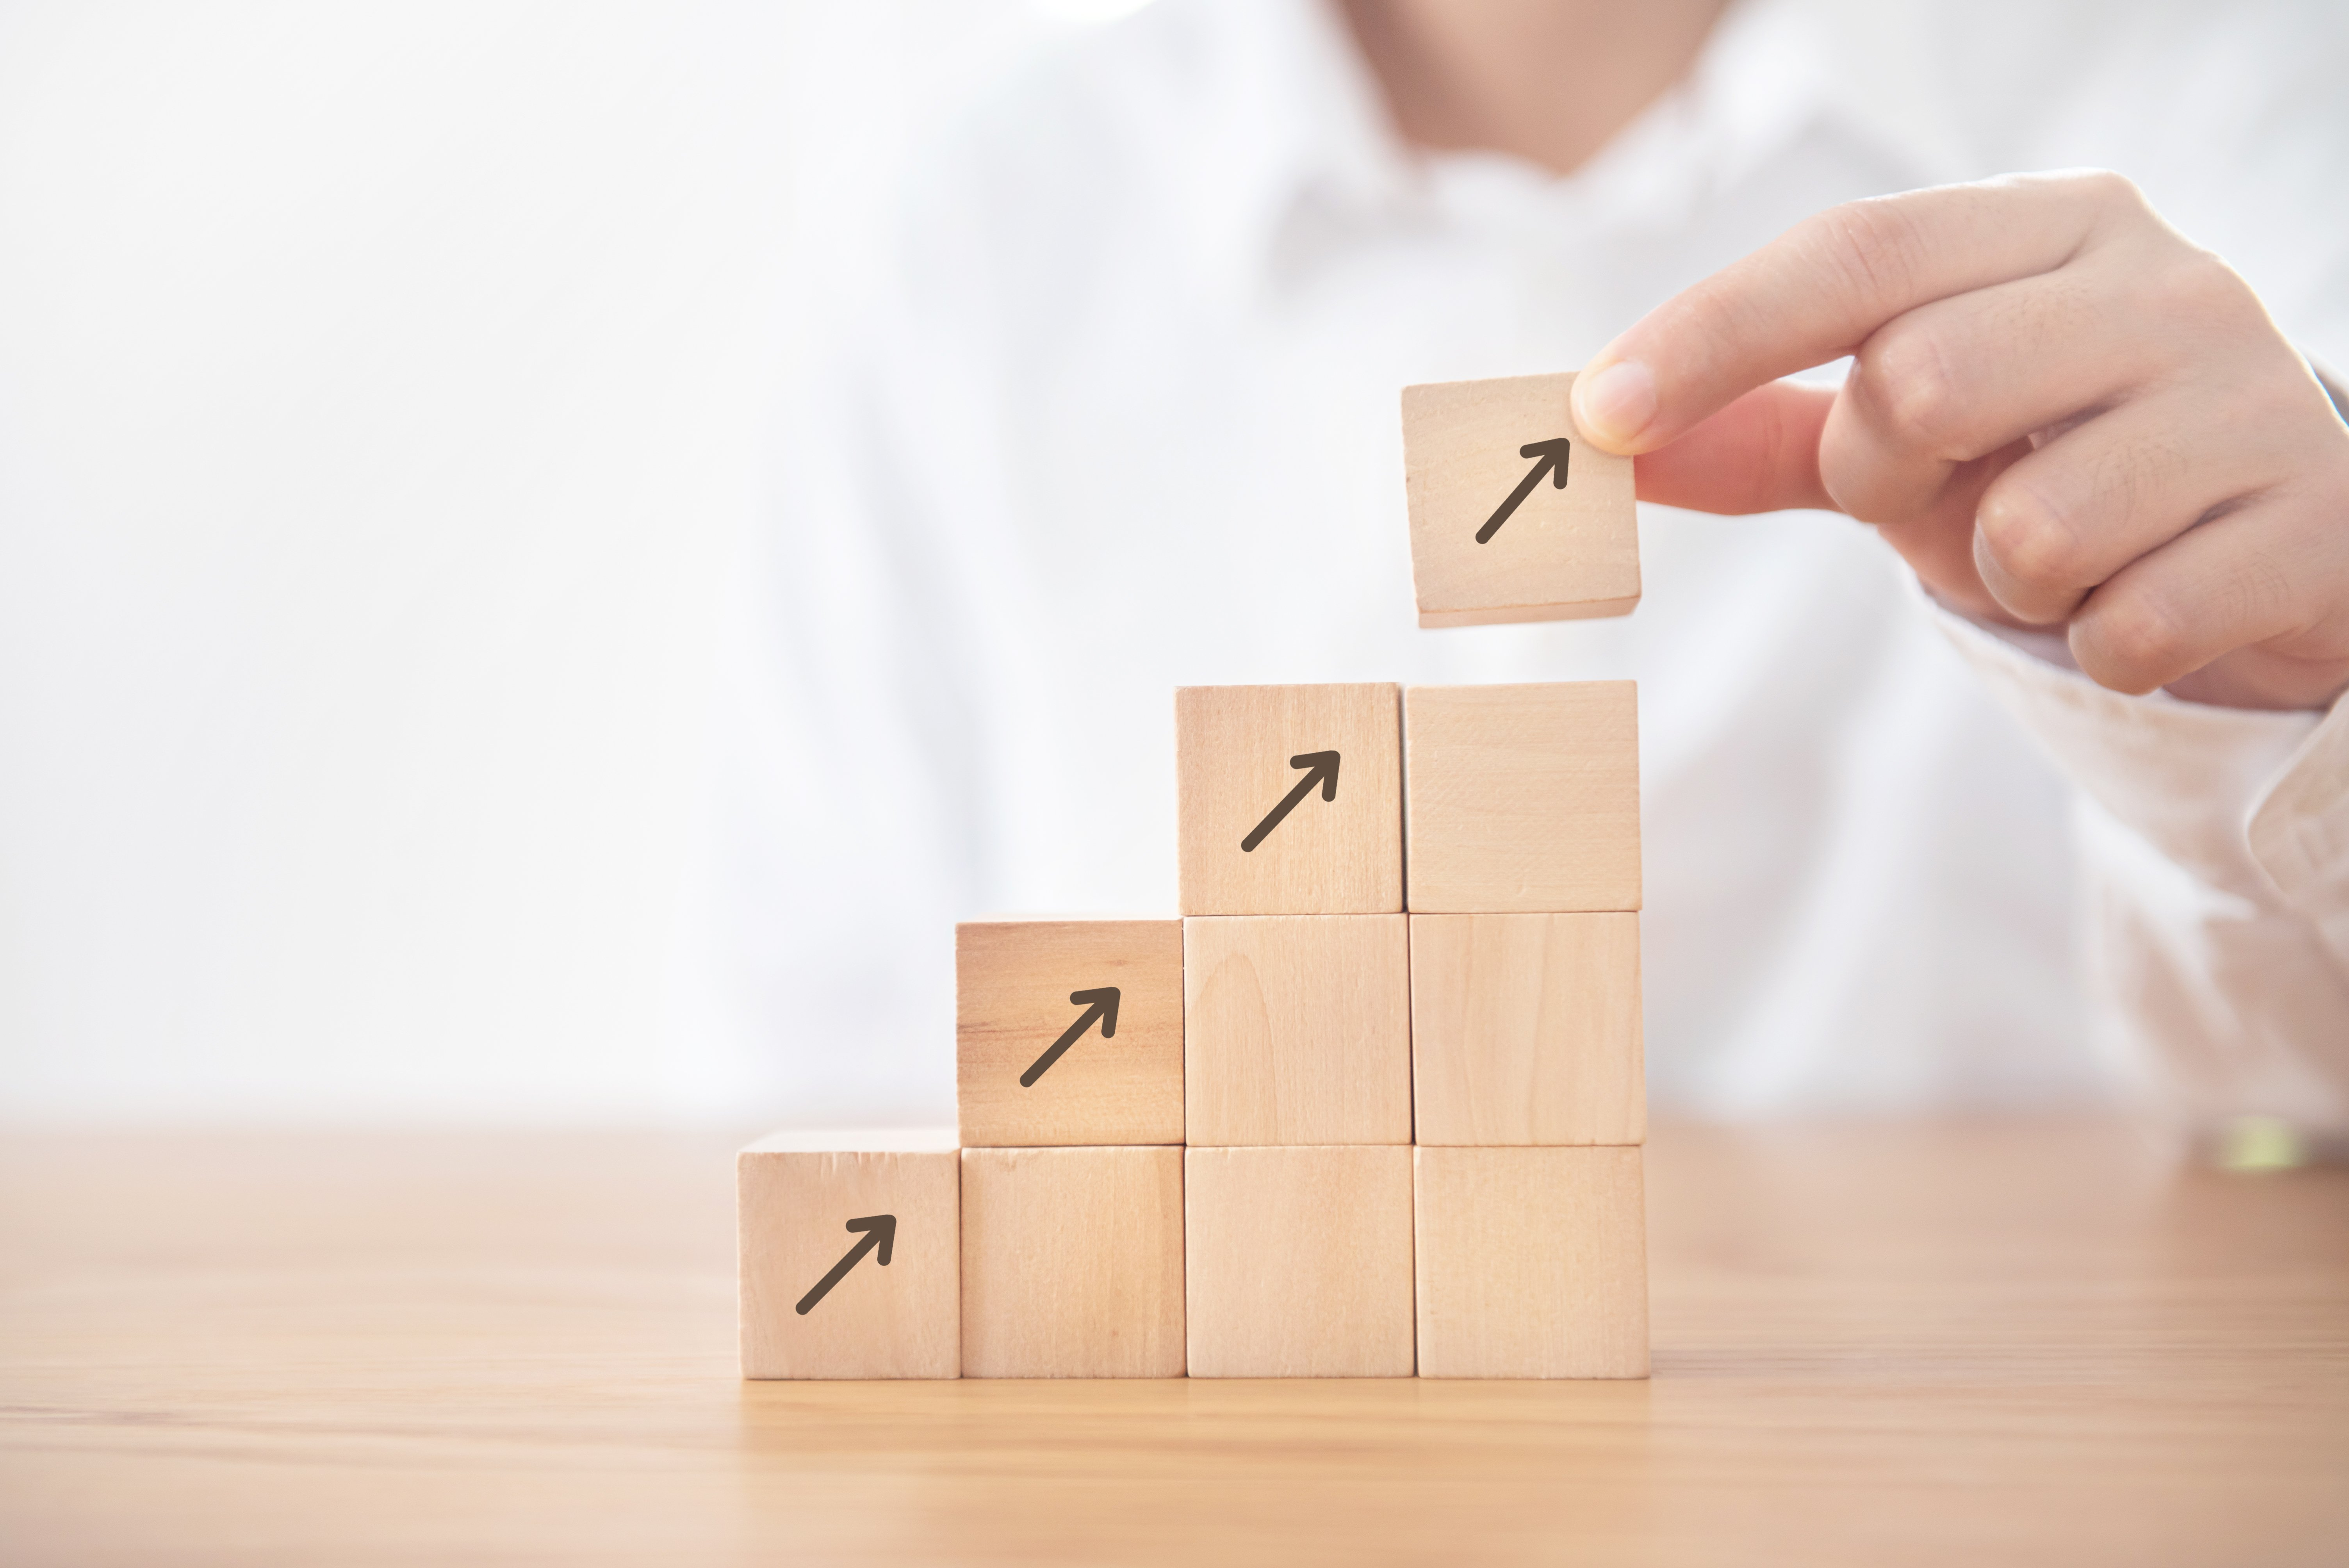 business-concept-growth-success-process-businesswoman-hand-arranging-wood-cube-stacking-as-step-stair-with-arrow-up-symbol